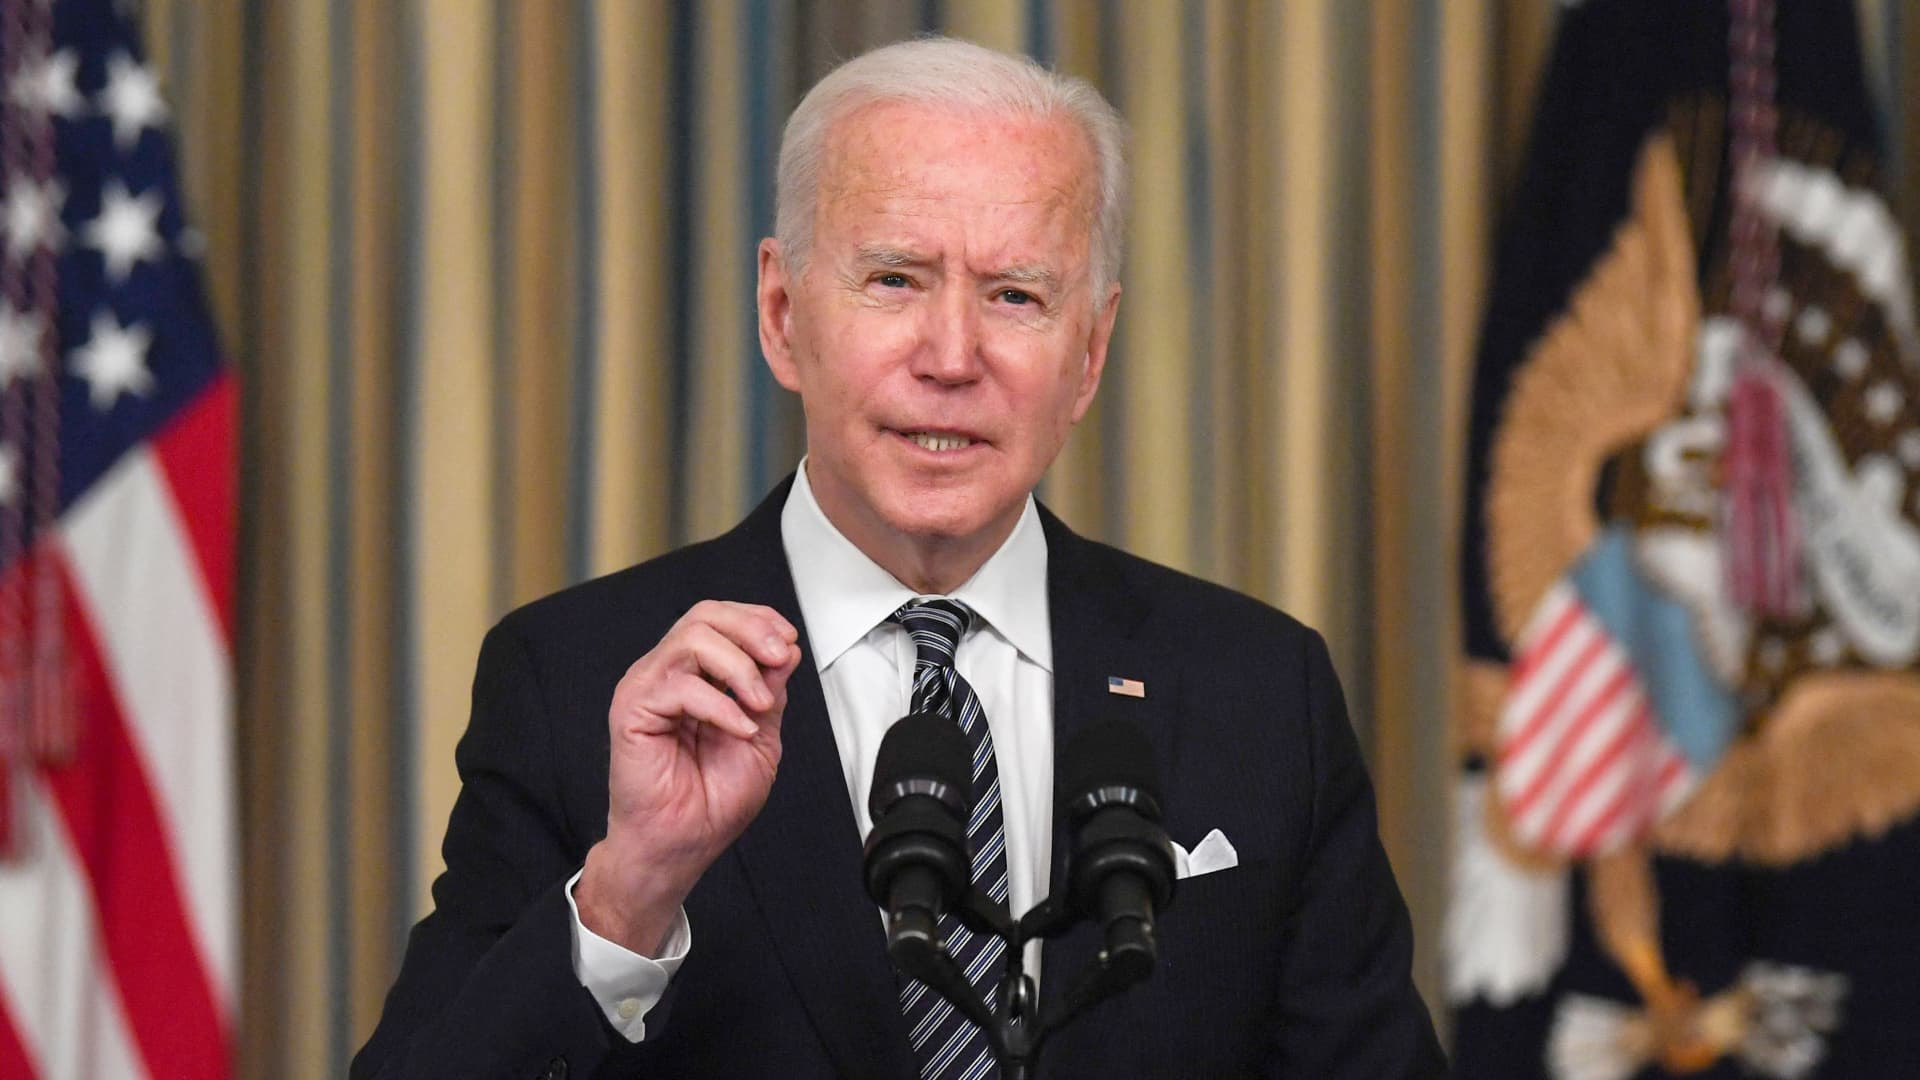 President Joe Biden gestures during remarks on the implementation of the American Rescue Plan in the State Dining room of the White House in Washington, DC on March 15, 2021.